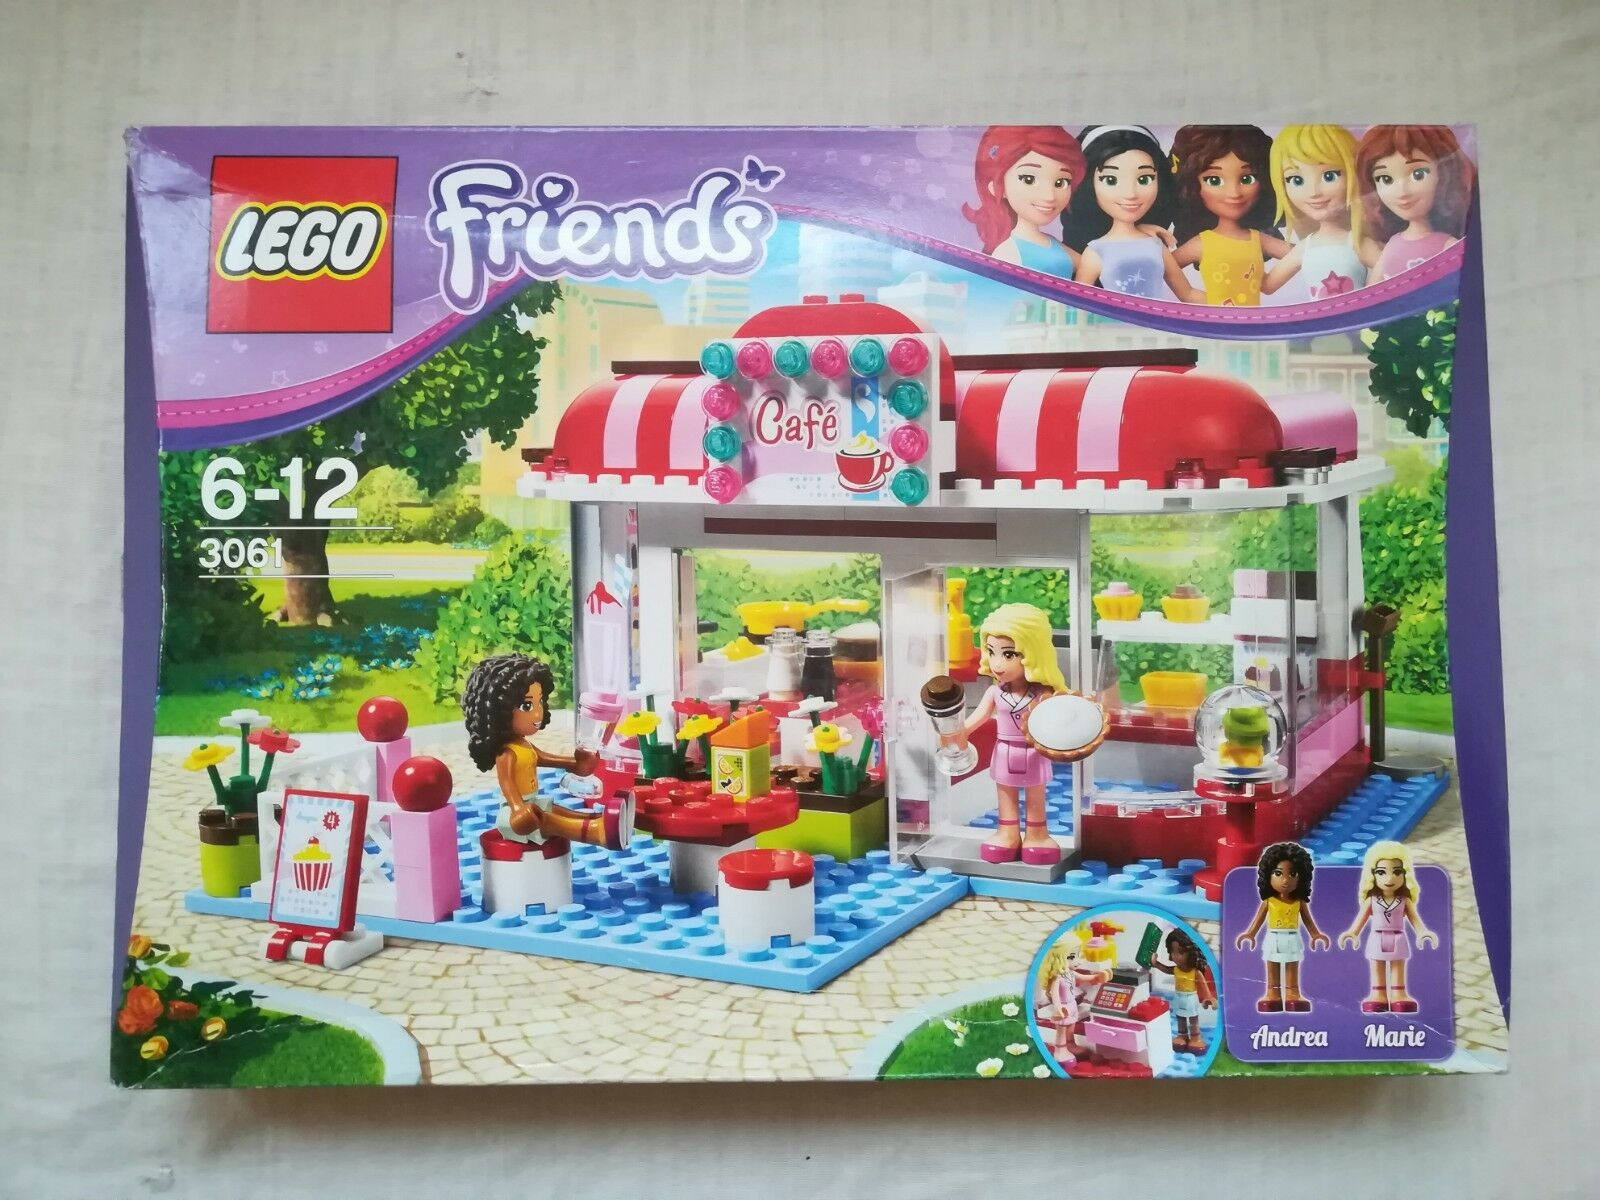 Lego Friends 3061 CITY PARK CAFE - Brand new sealed with shelfwear